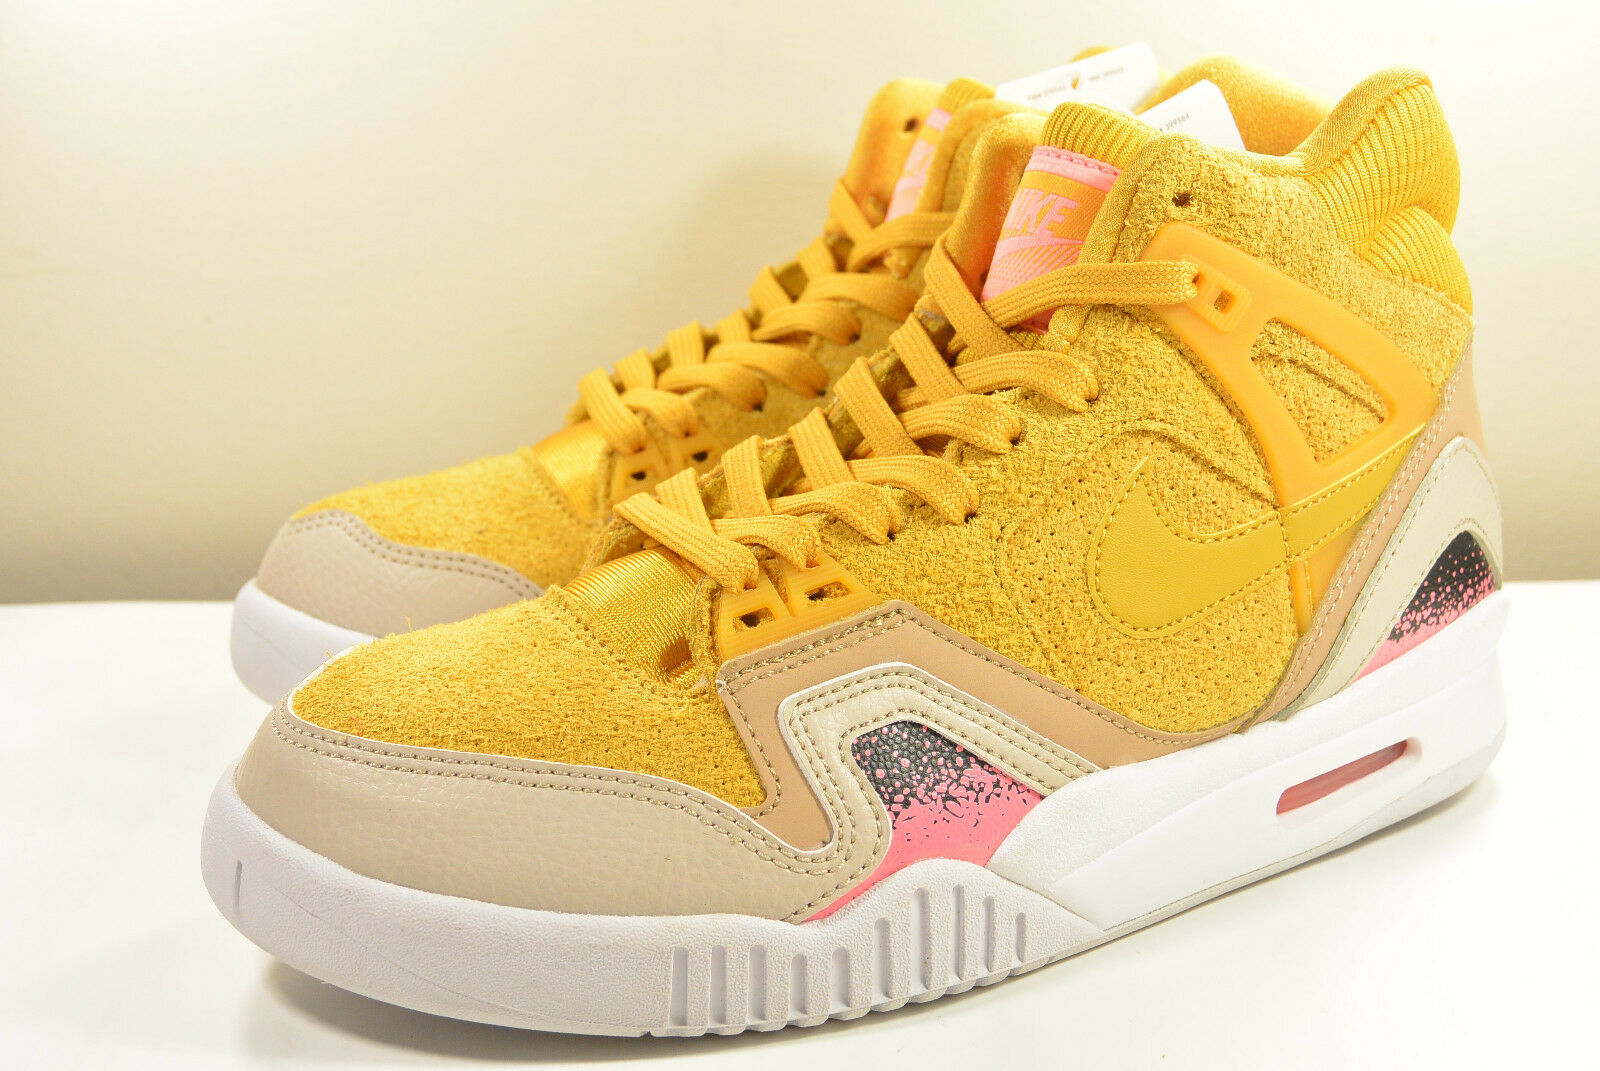 DS NIKE 2016 SAMPLE AIR TECH CHALLENGE GOLD II GOLD CHALLENGE DART 7 AGASSI MAX TRAINER COURT 34a370